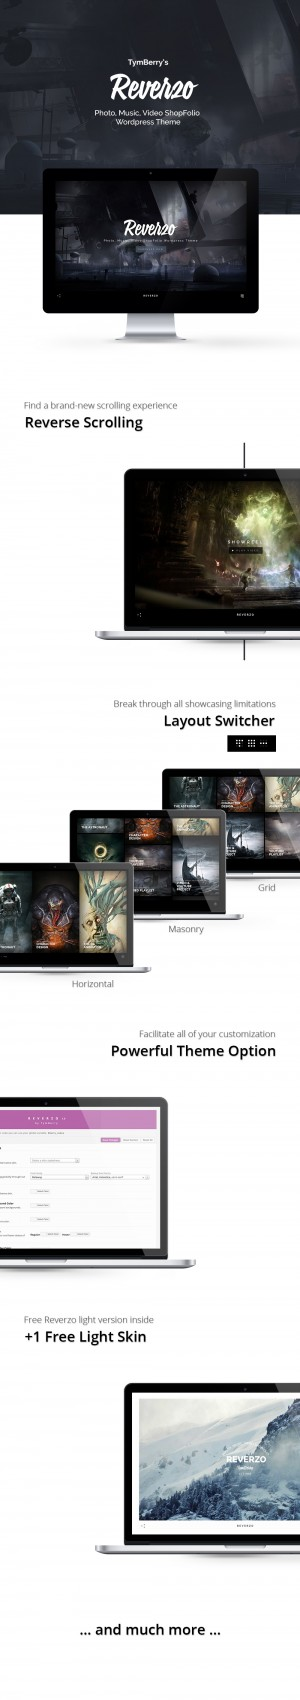 Reverzo – Photo, Music & Video Creative ShopFolio WordPress Theme——-Reve ...